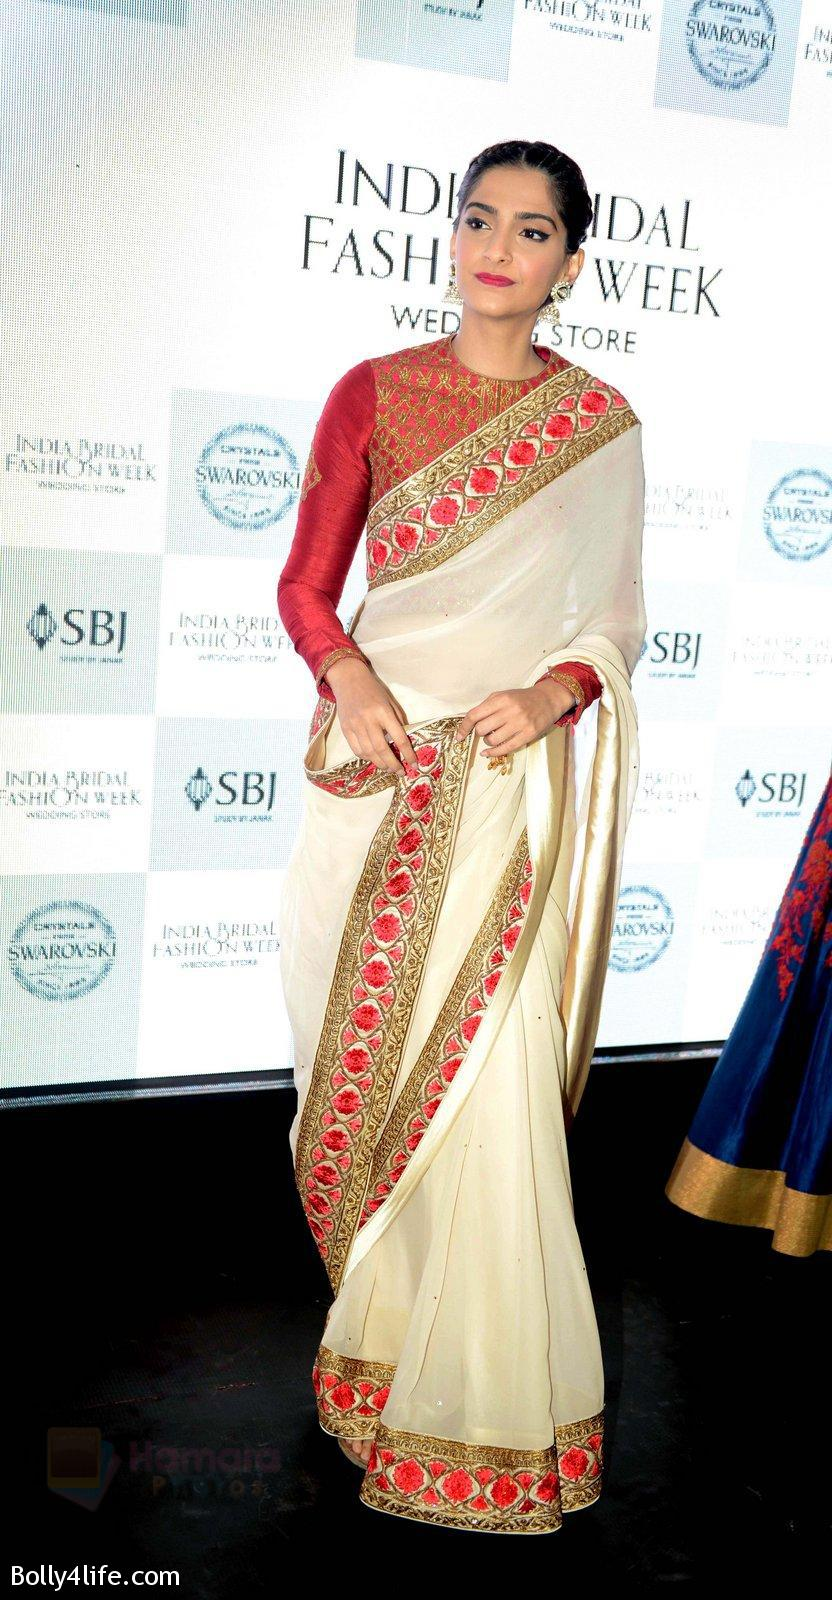 Sonam-Kapoor-during-the-launch-of-the-first-Indian-Bridal-Fashion-Week-Wedding-Store-in-New-Delhi-on-9th-Sept-2016-21.jpg